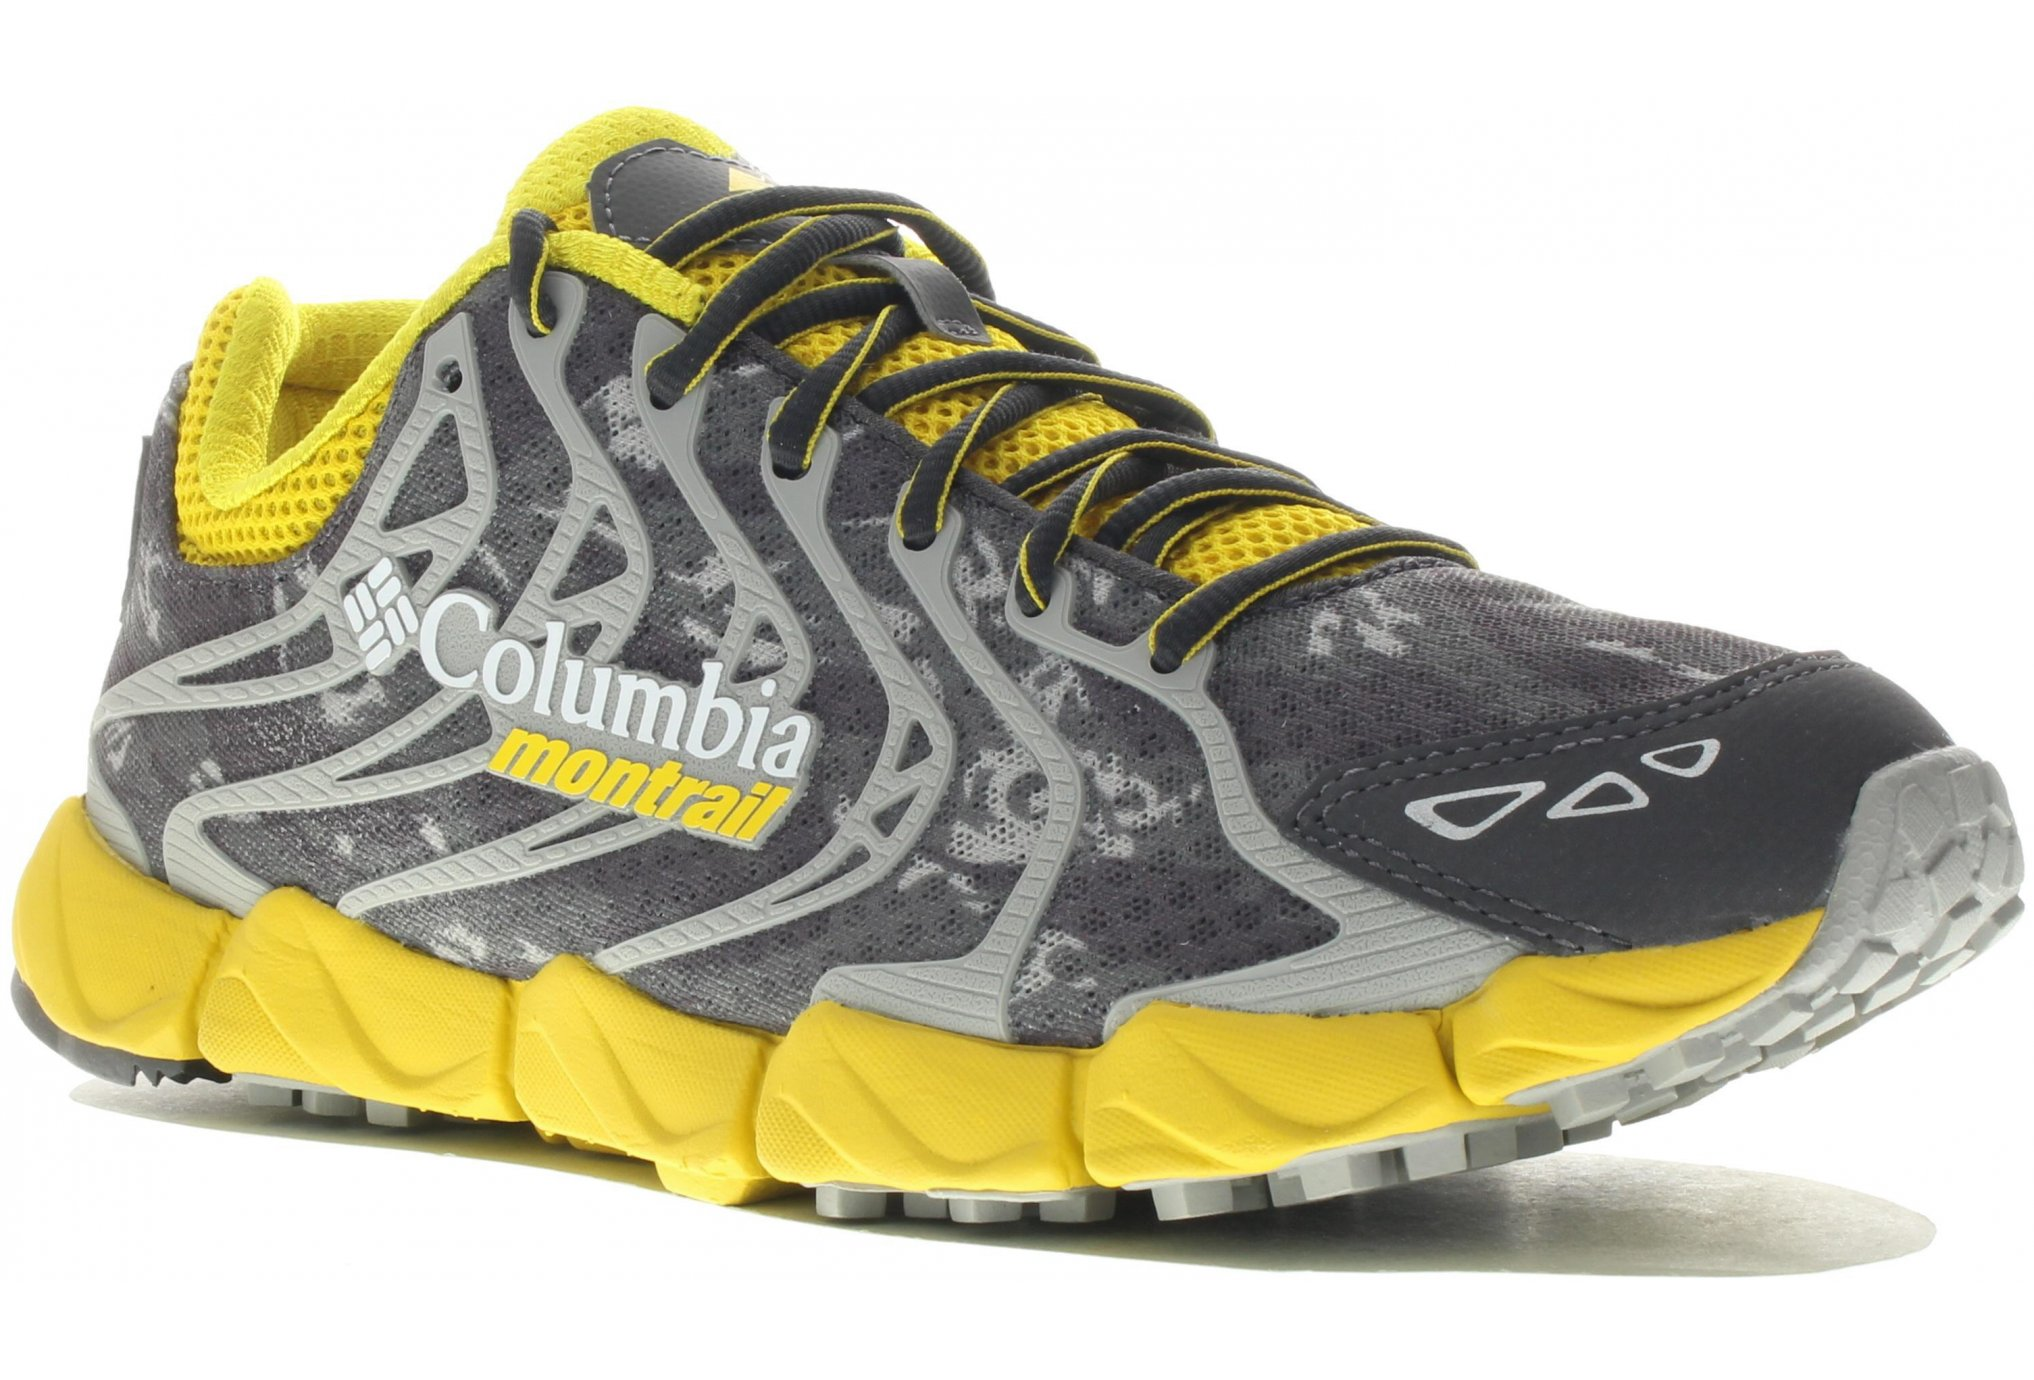 Columbia Fluidflex f.K.t m chaussures homme